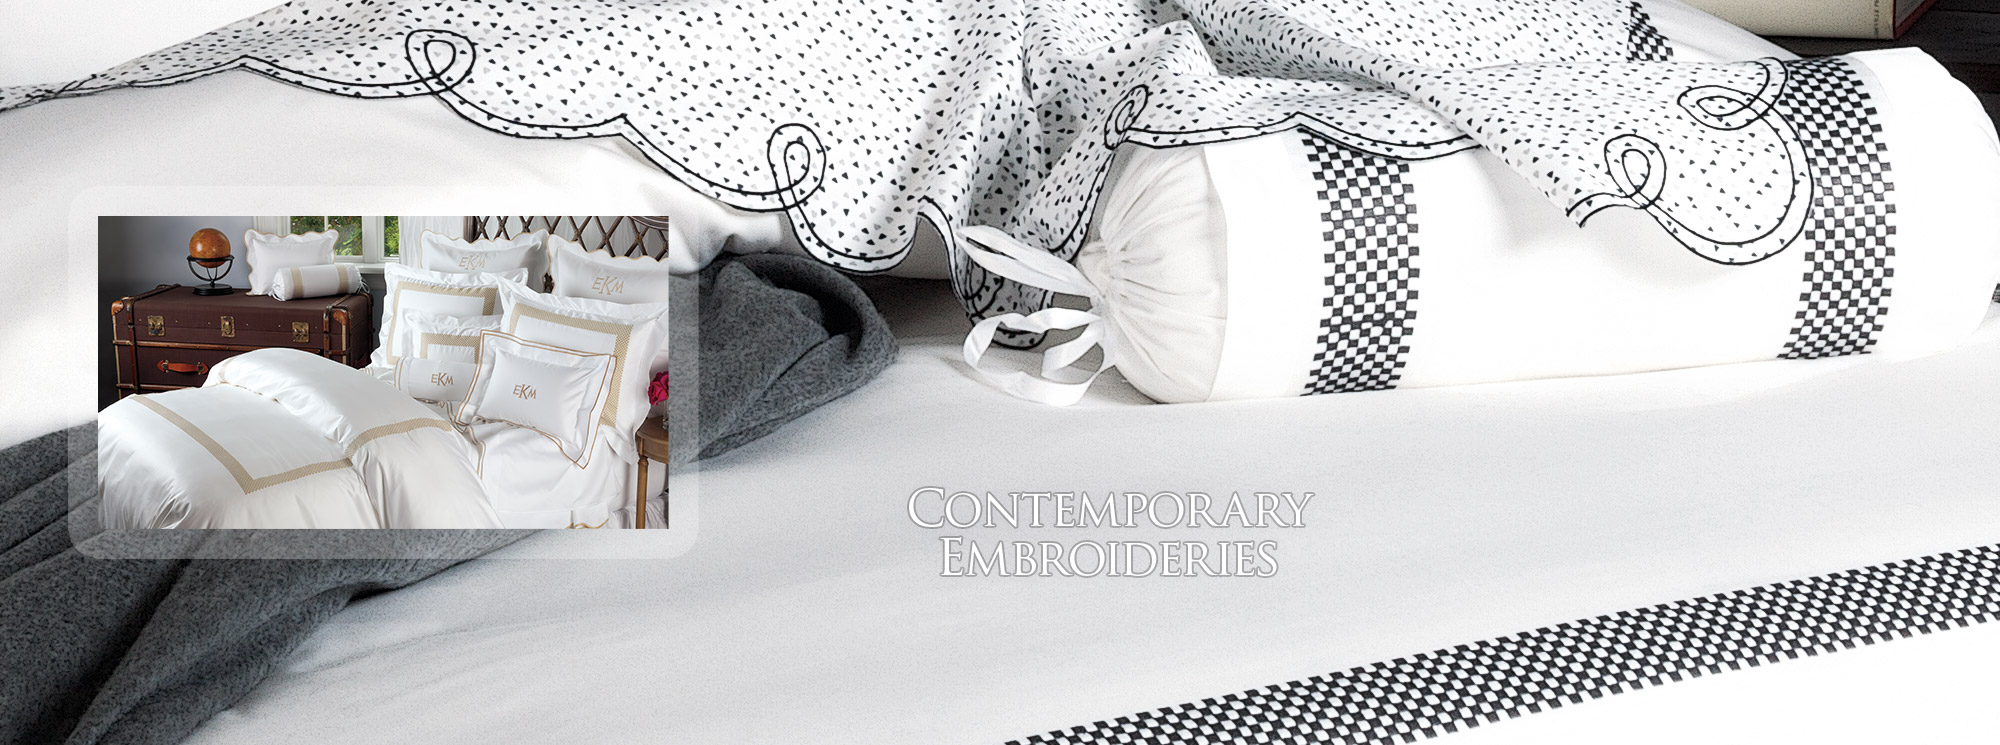 Contemporary Embroideries